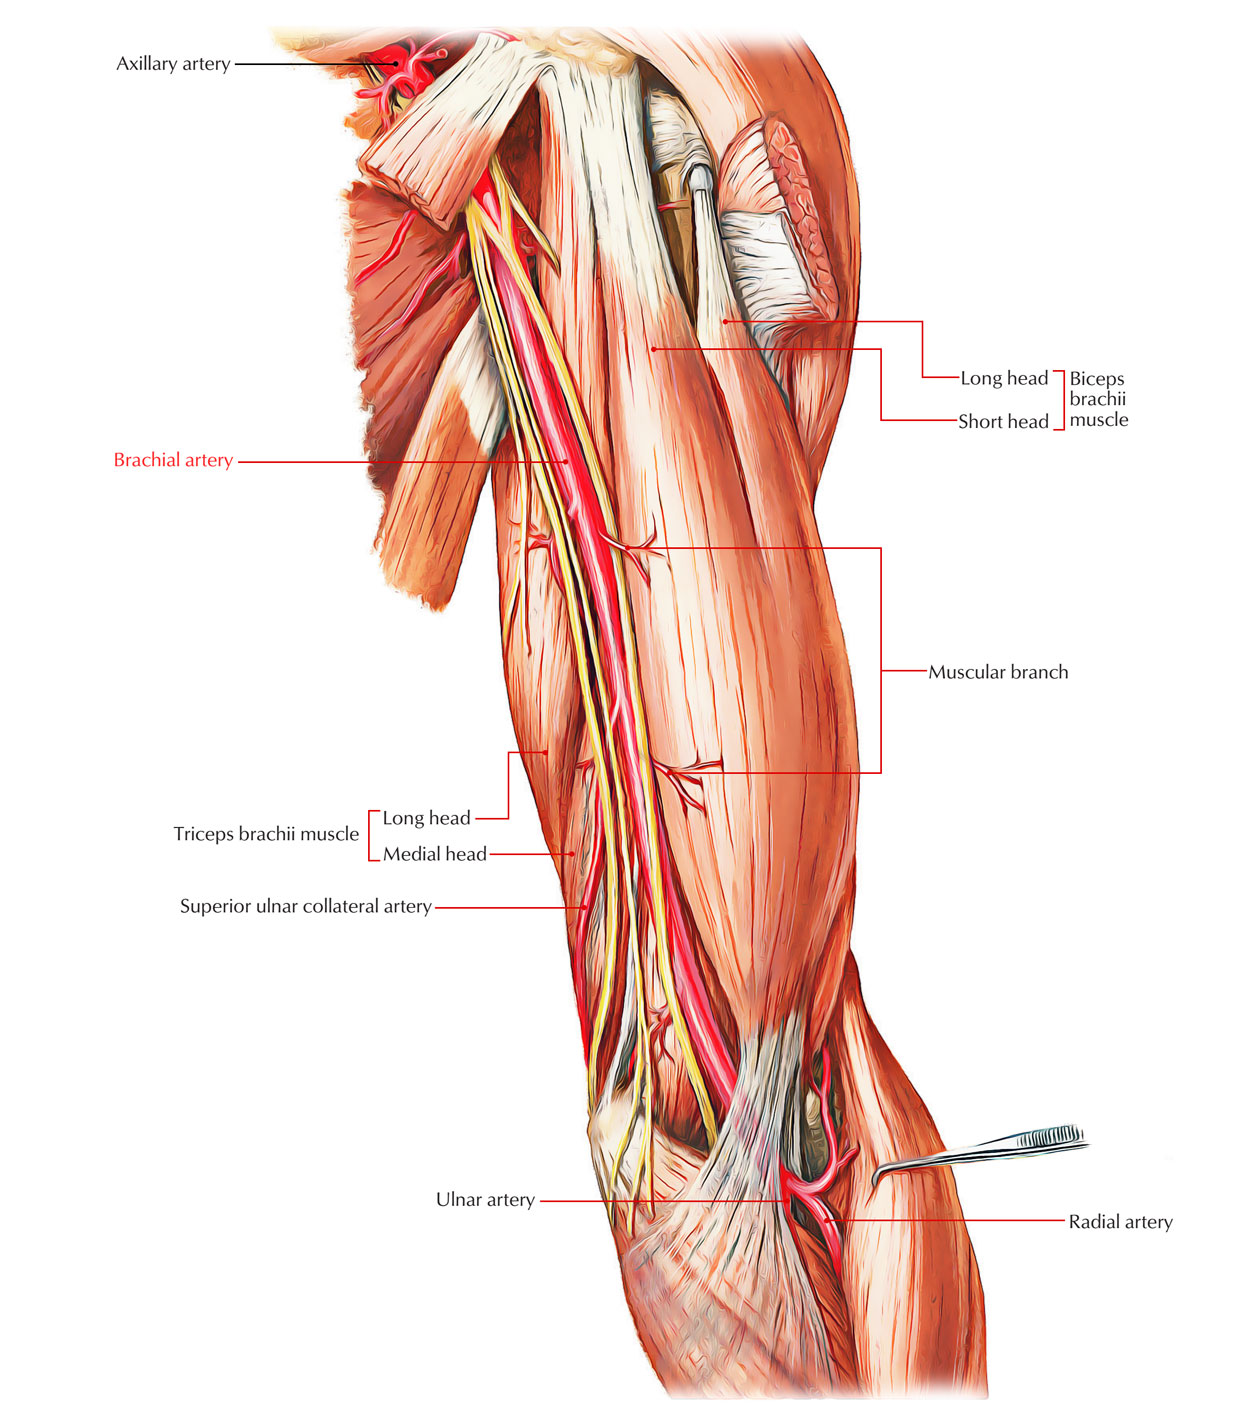 Easy Notes On 【Arteries of the Upper Limb】Learn in Just 4 Minutes!